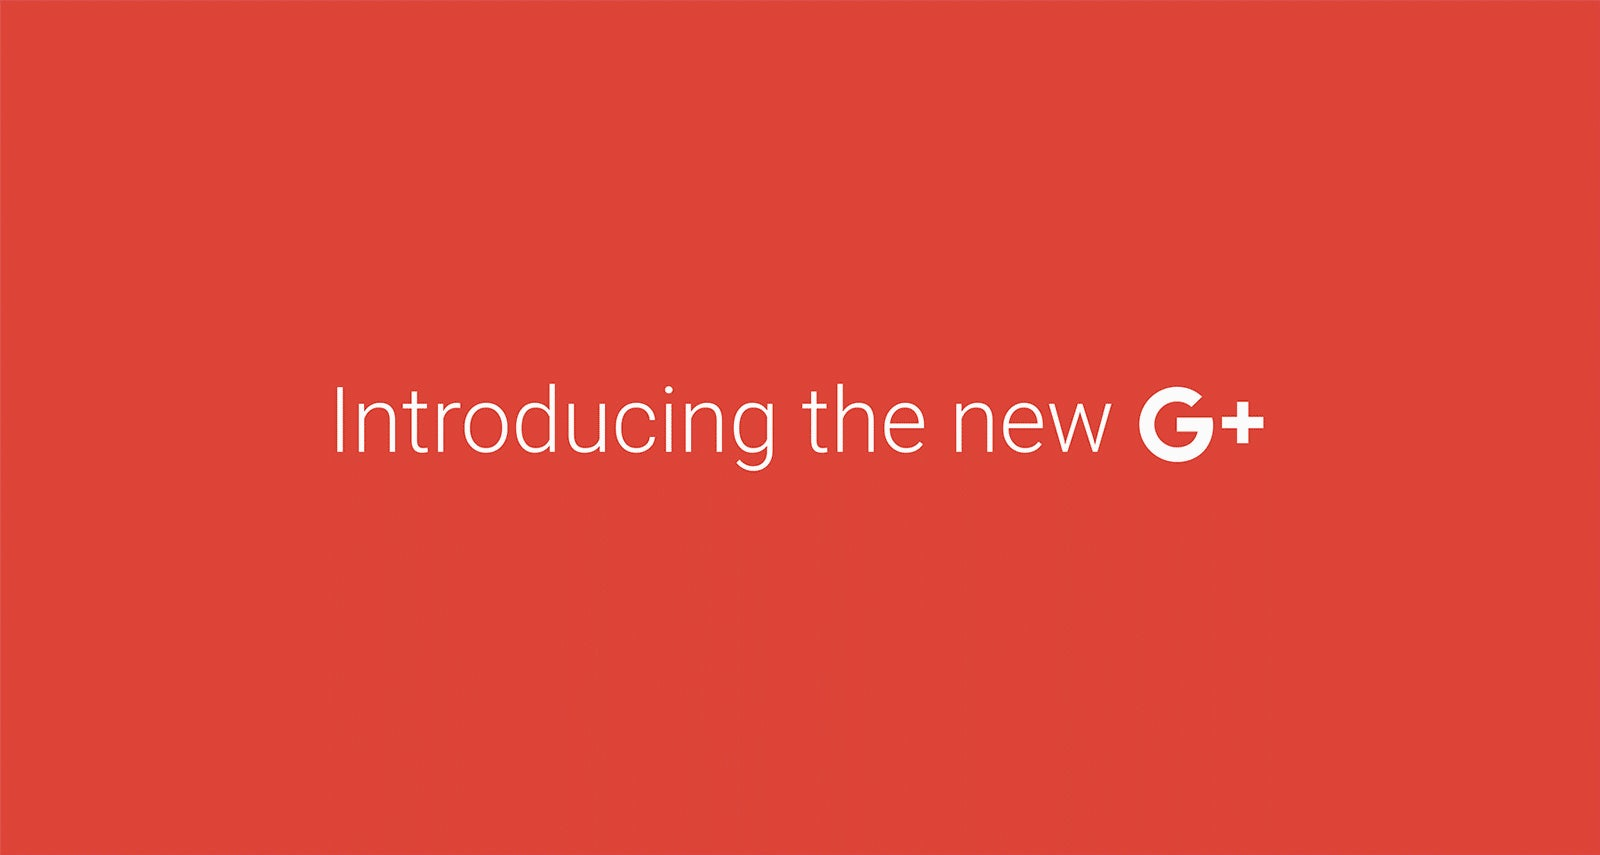 Google+ Gets a Revamp, Now Focusing On Communities and Collections